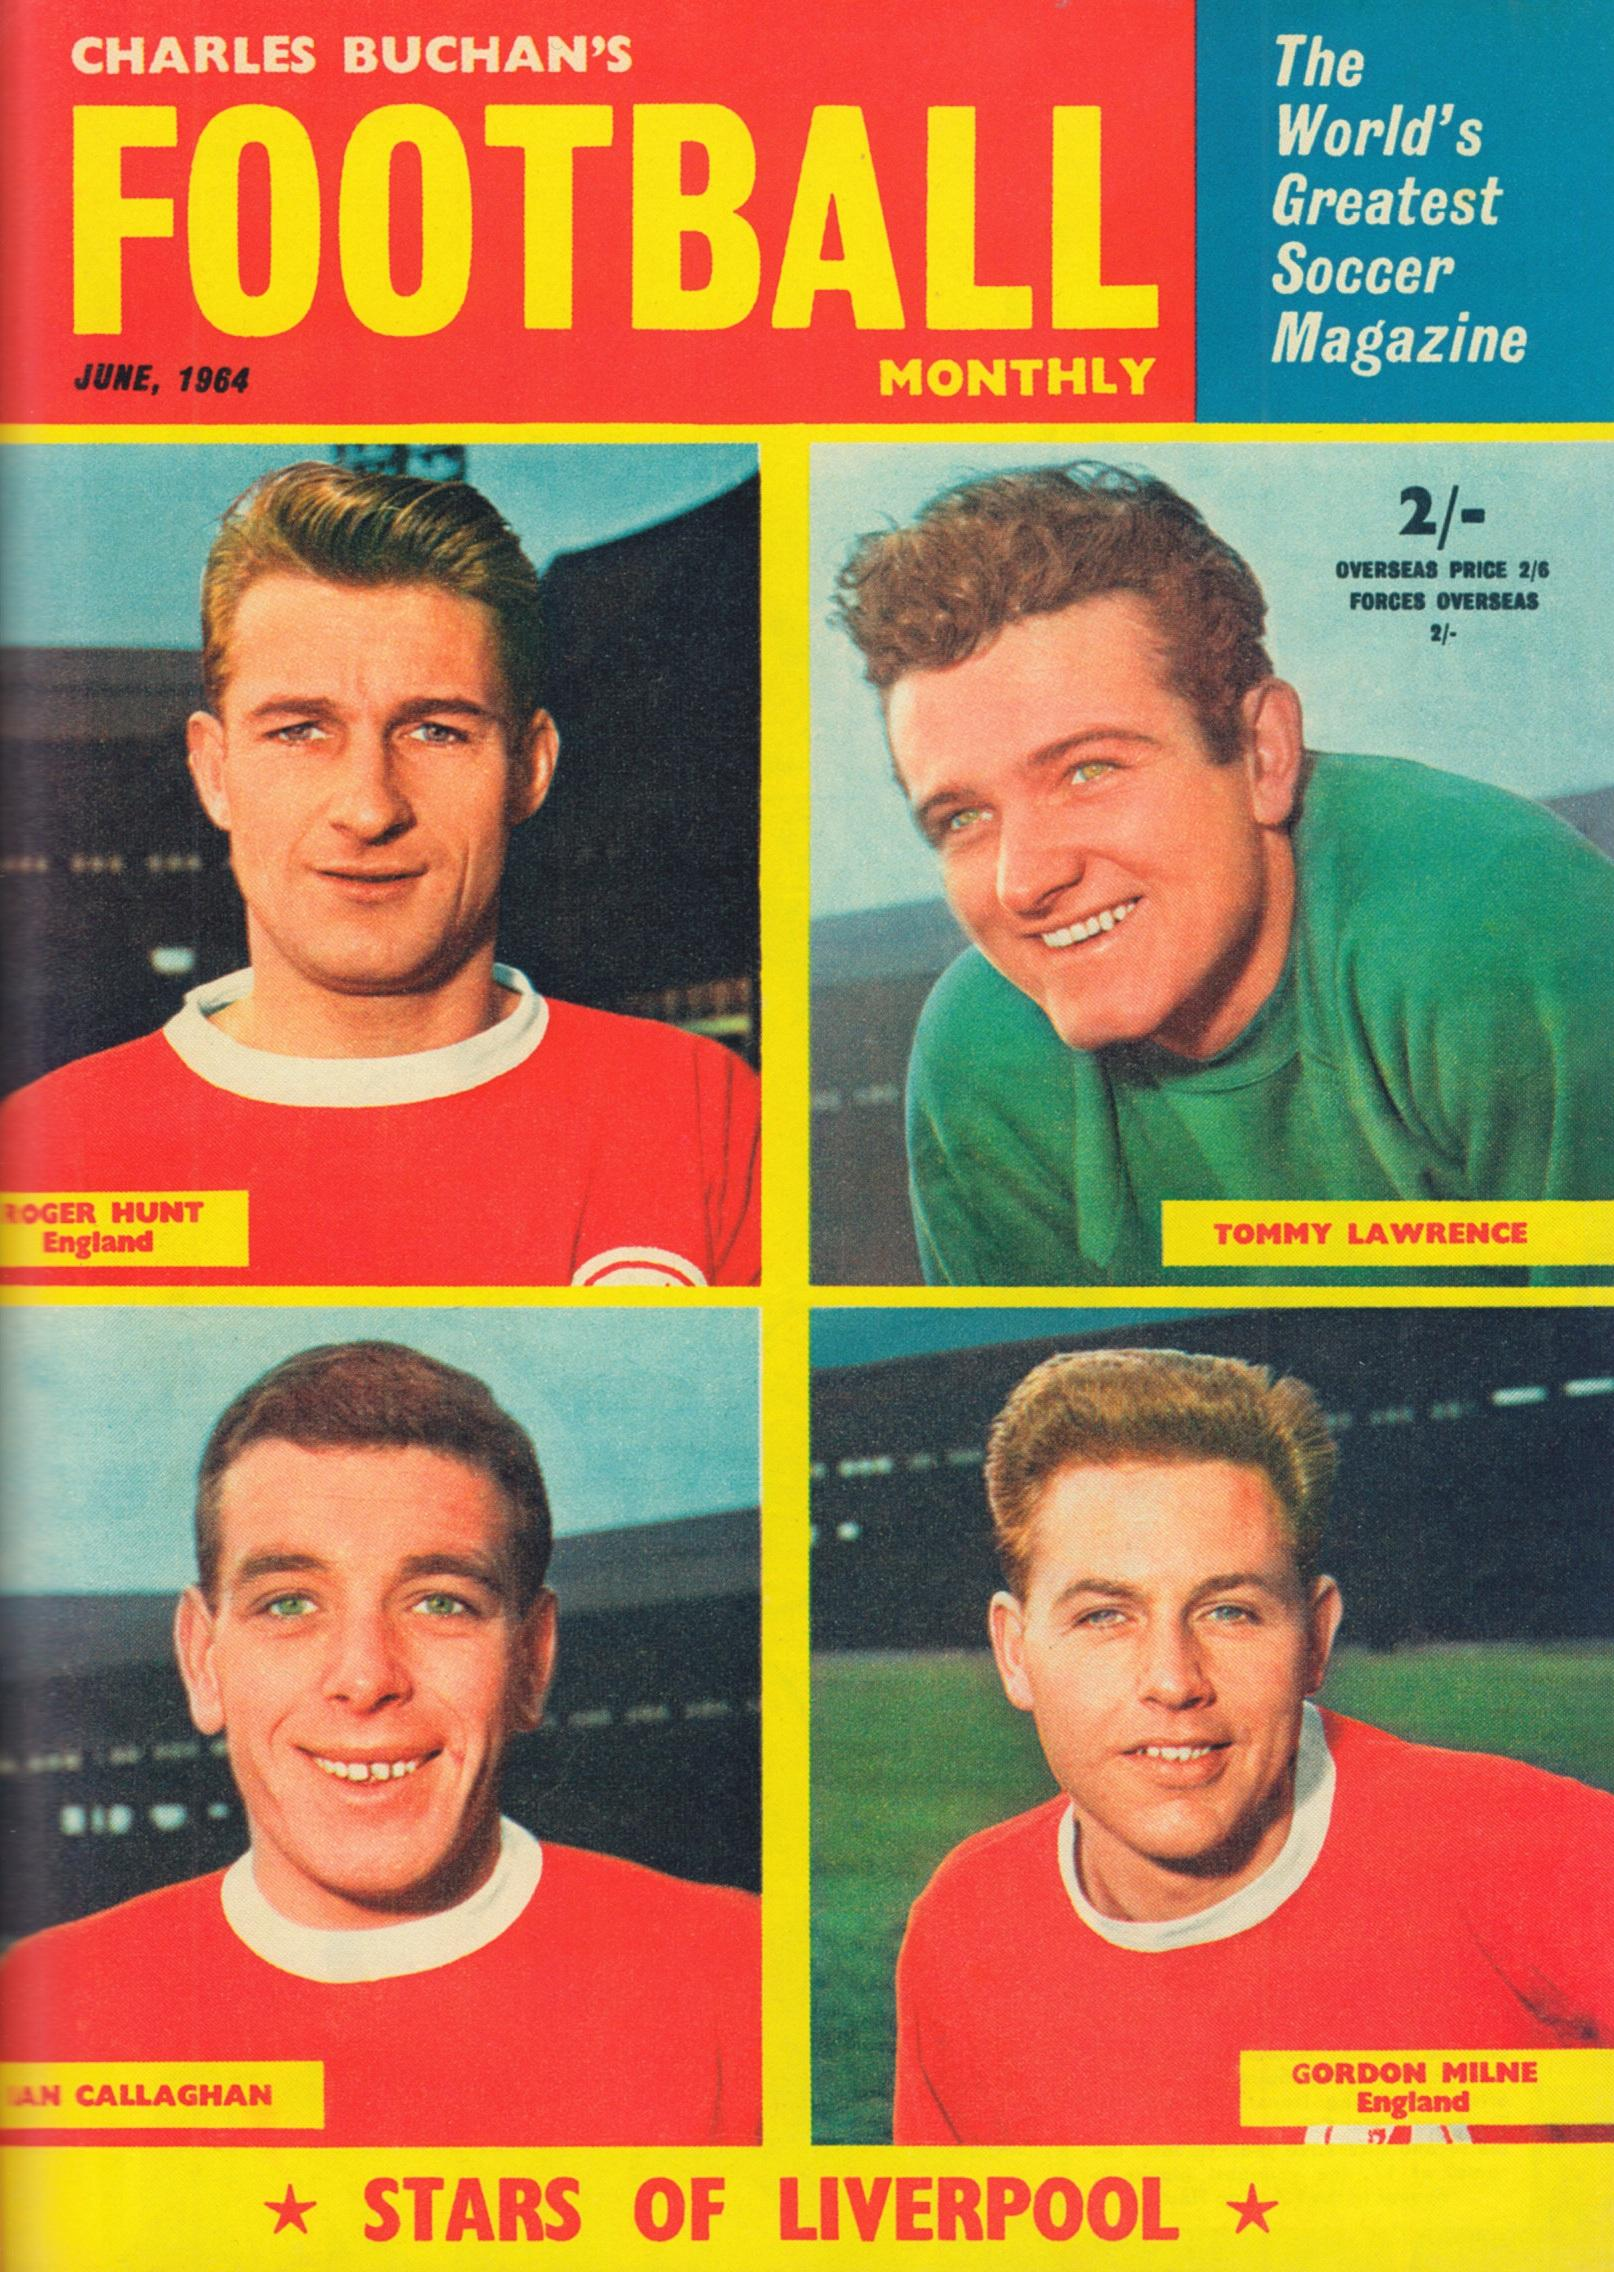 Stars of Liverpool - Cover of Football Monthly June 1964